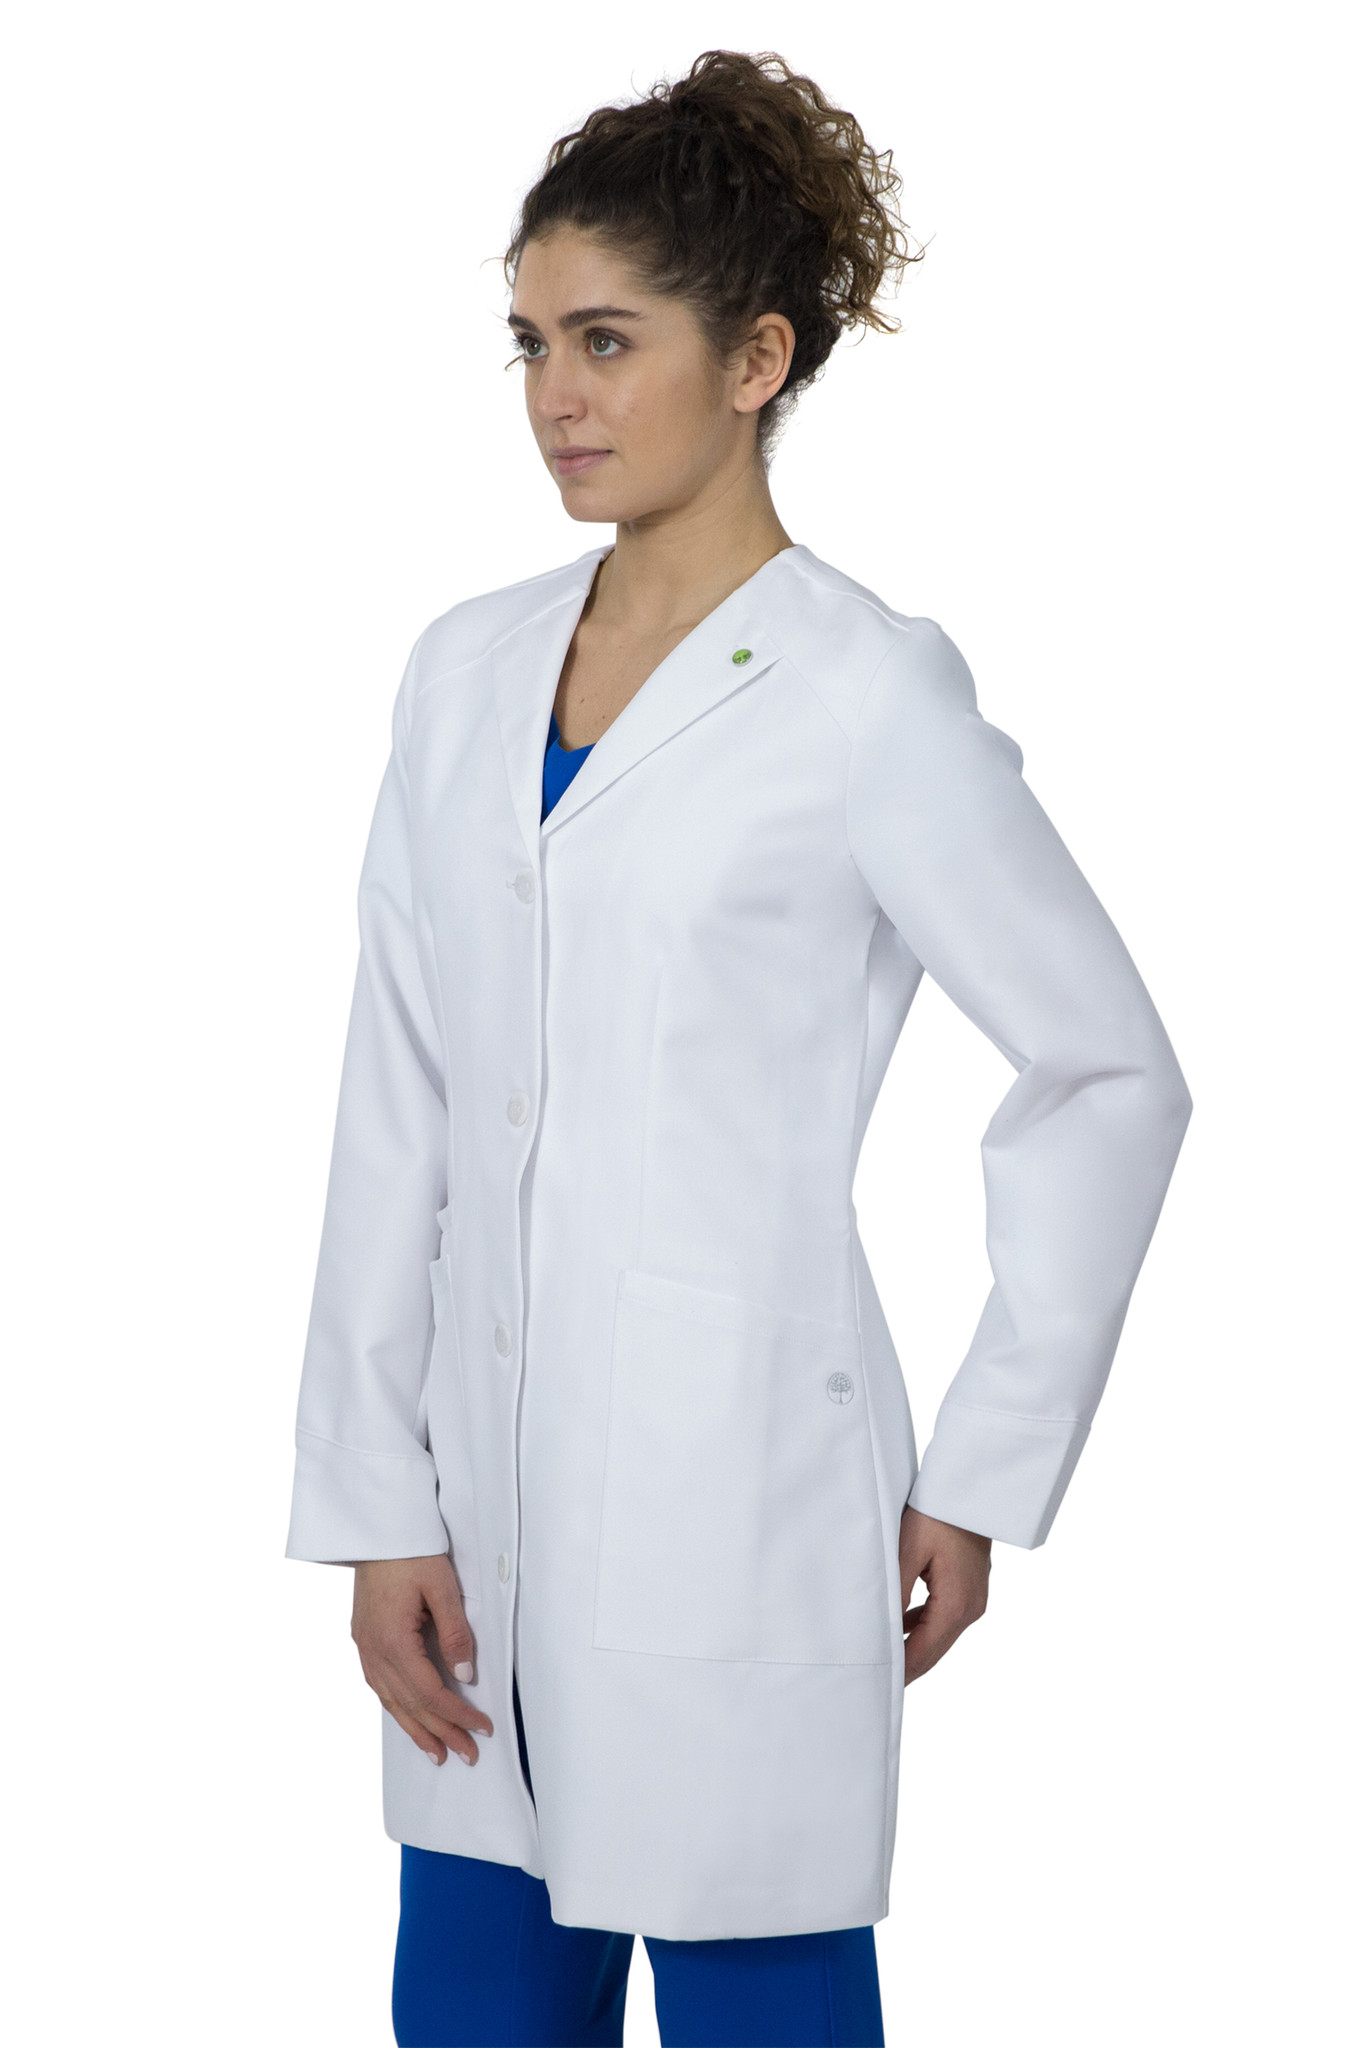 Healing Hands White Coat 5102 The Professional Farrah Women's Lab Coat with Fluid Protection and Wrinkle Resistance Side Image